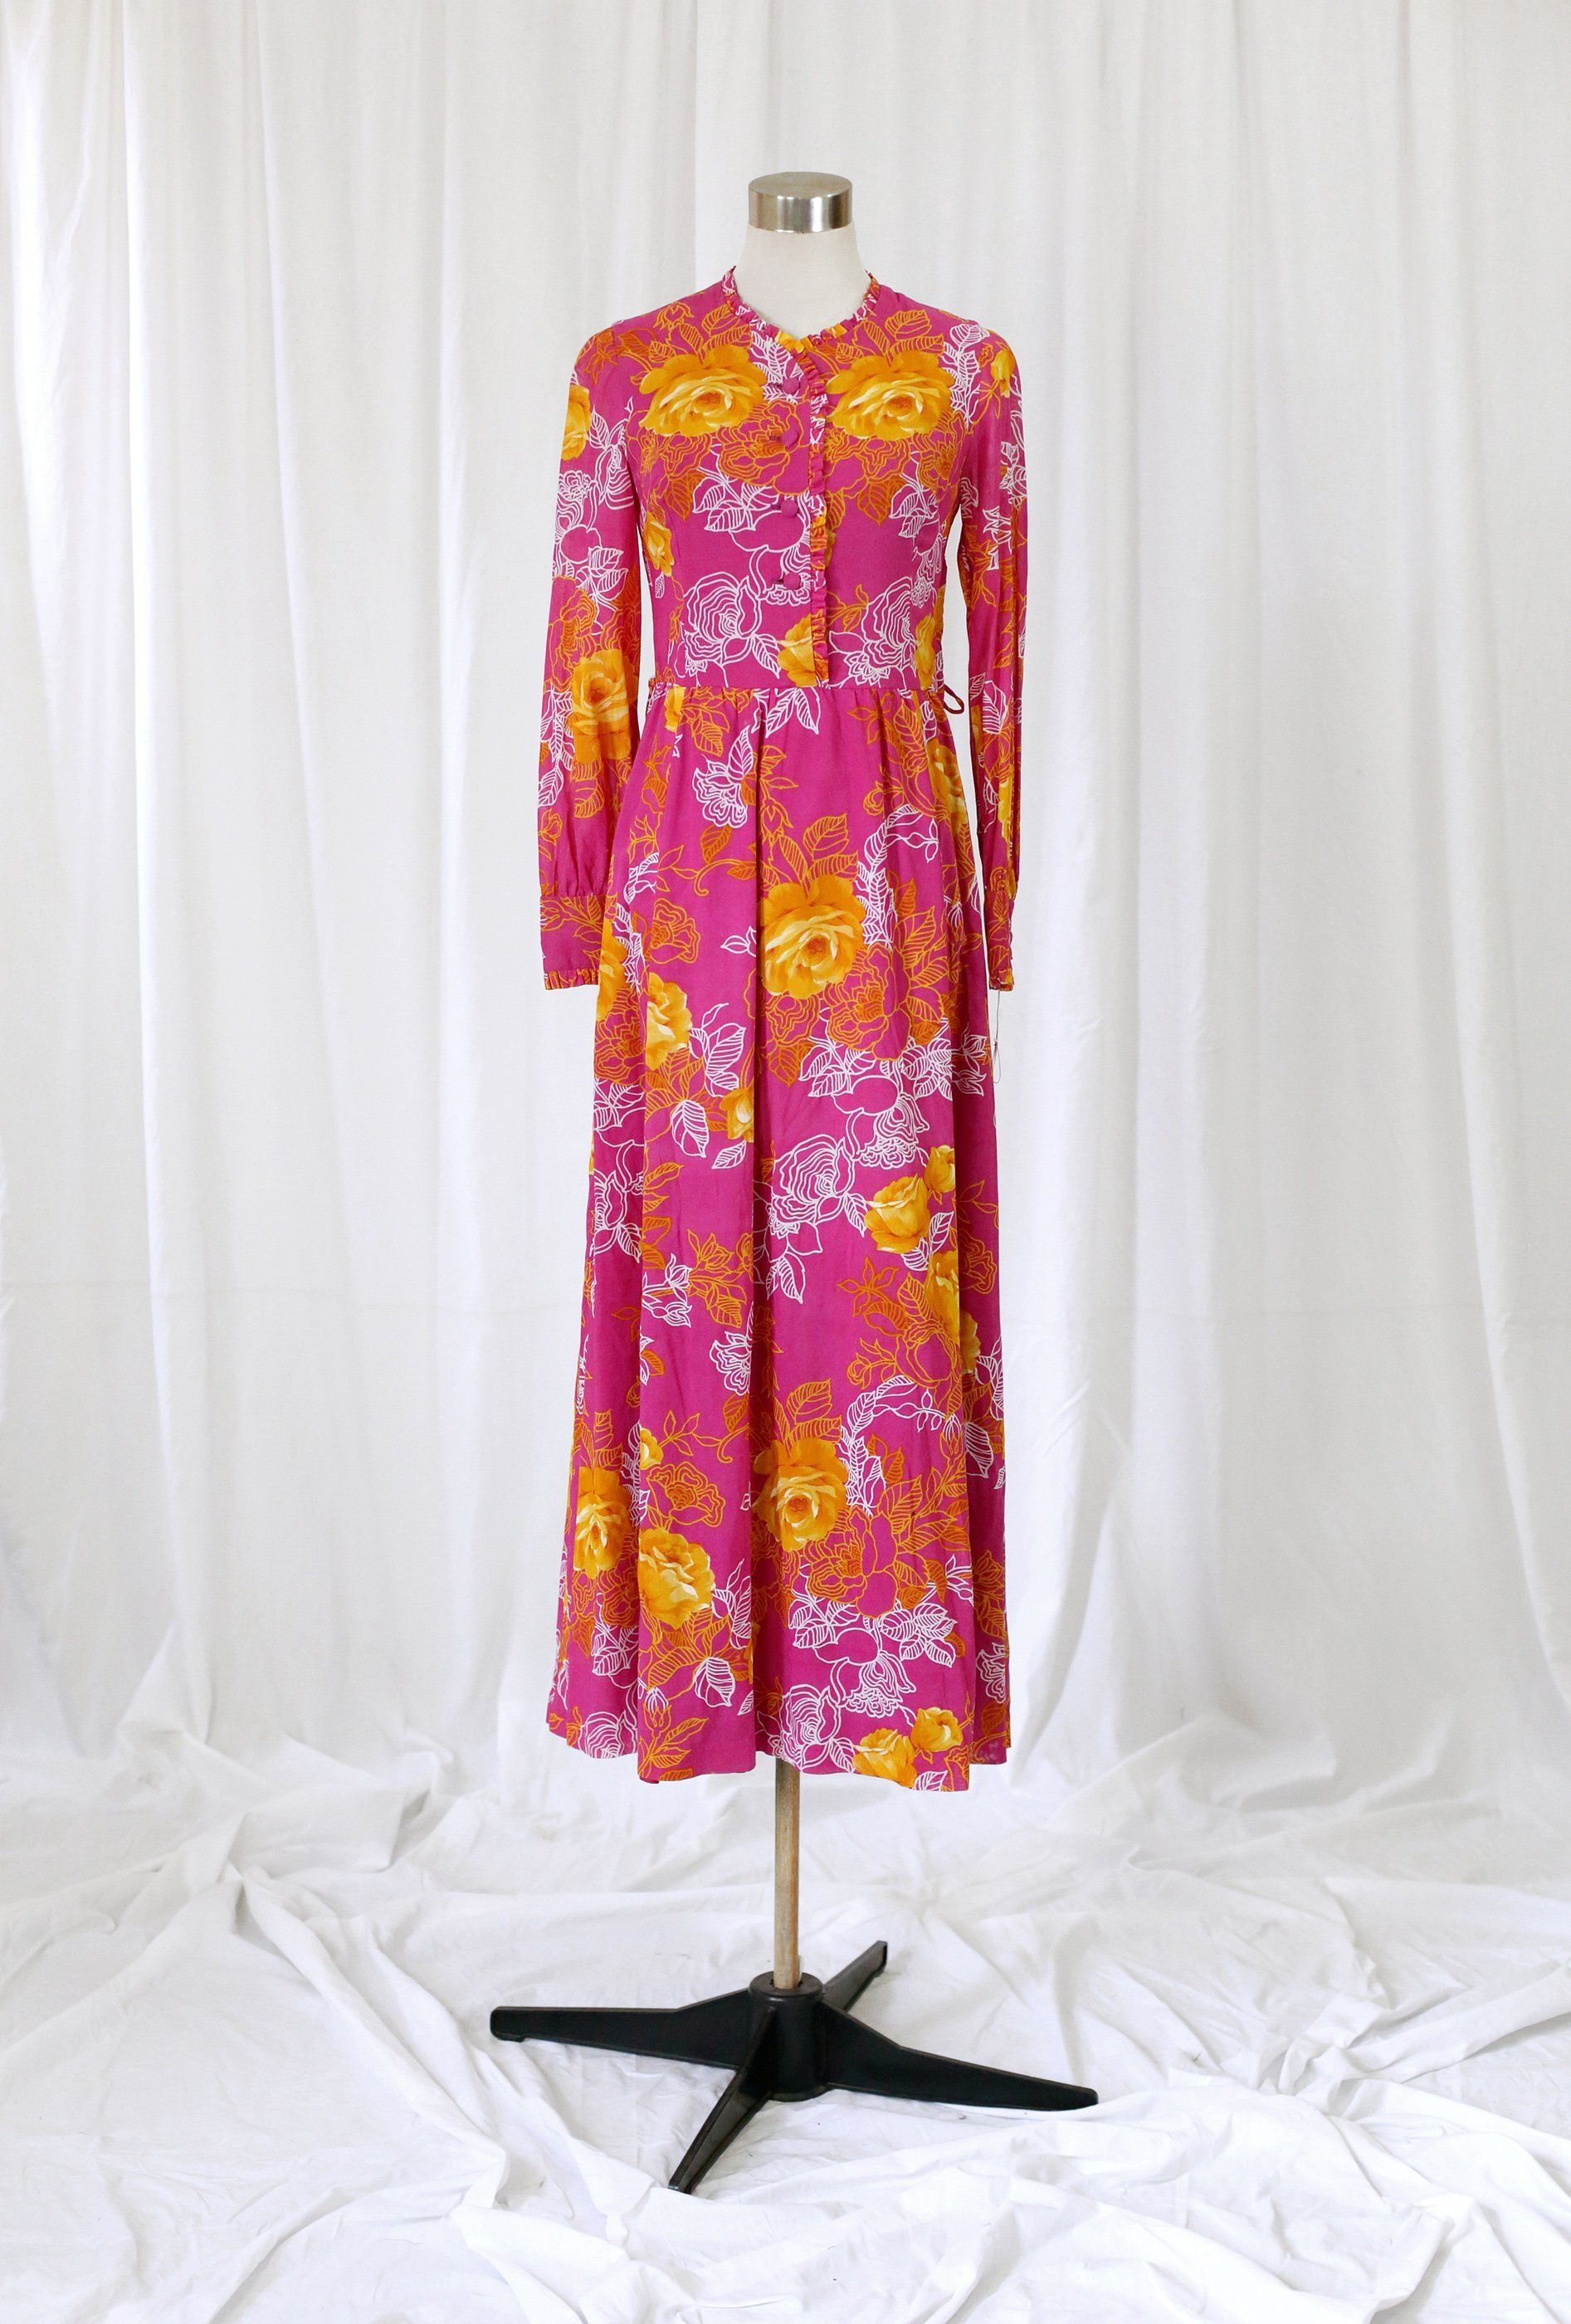 022dff9d1a 70s Pink Floral Maxi Dress with Frill Sleeve Detail | Vintage ...